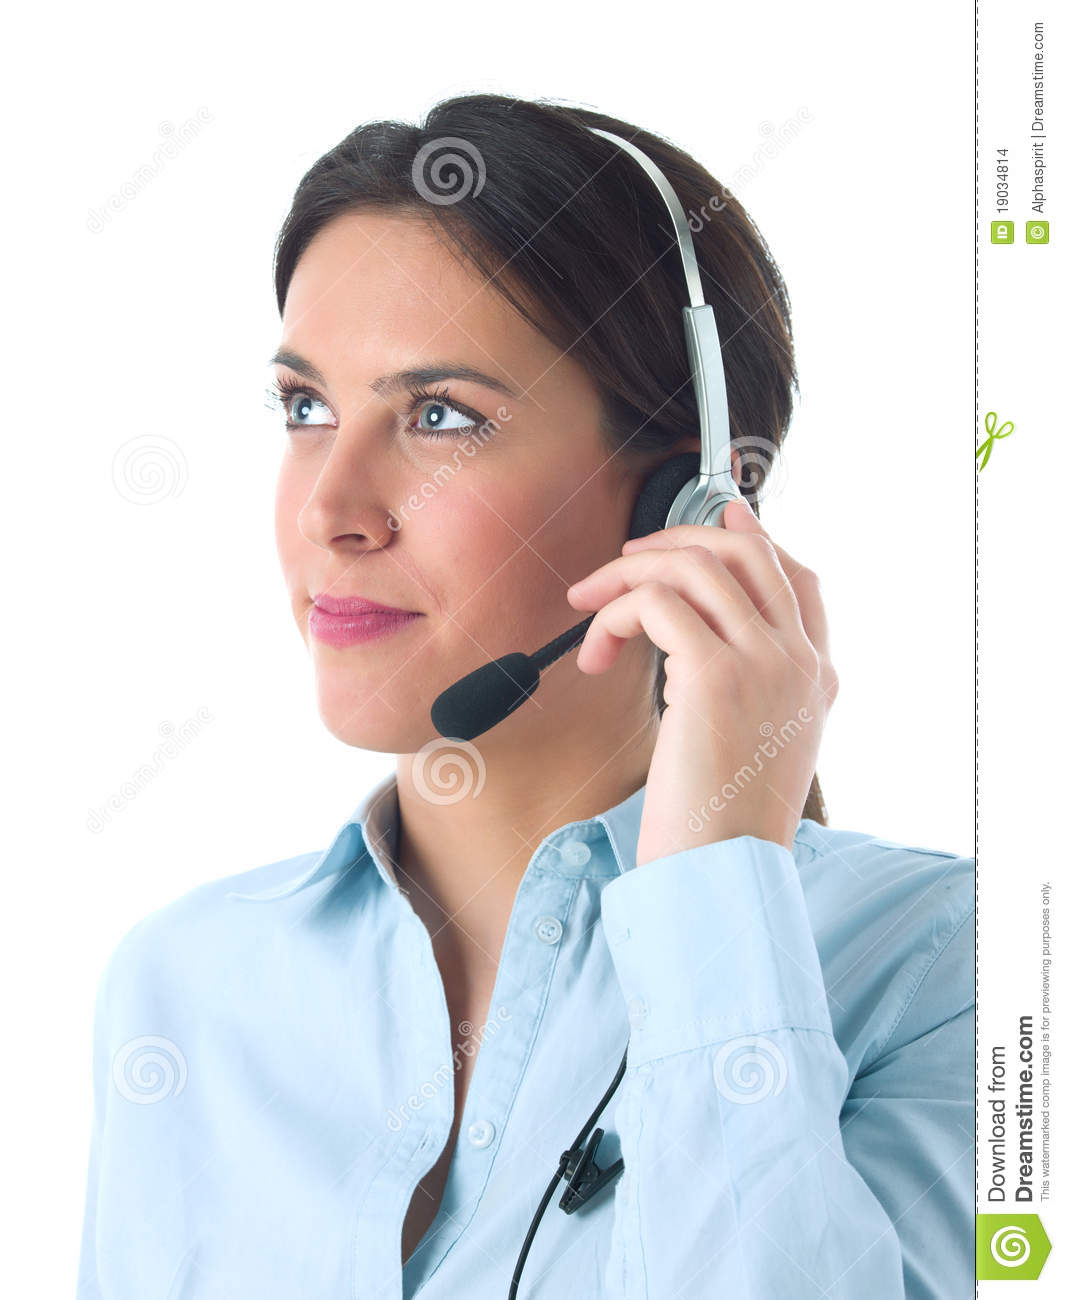 ee36dde566f238 Customer service agent stock photo. Image of woman